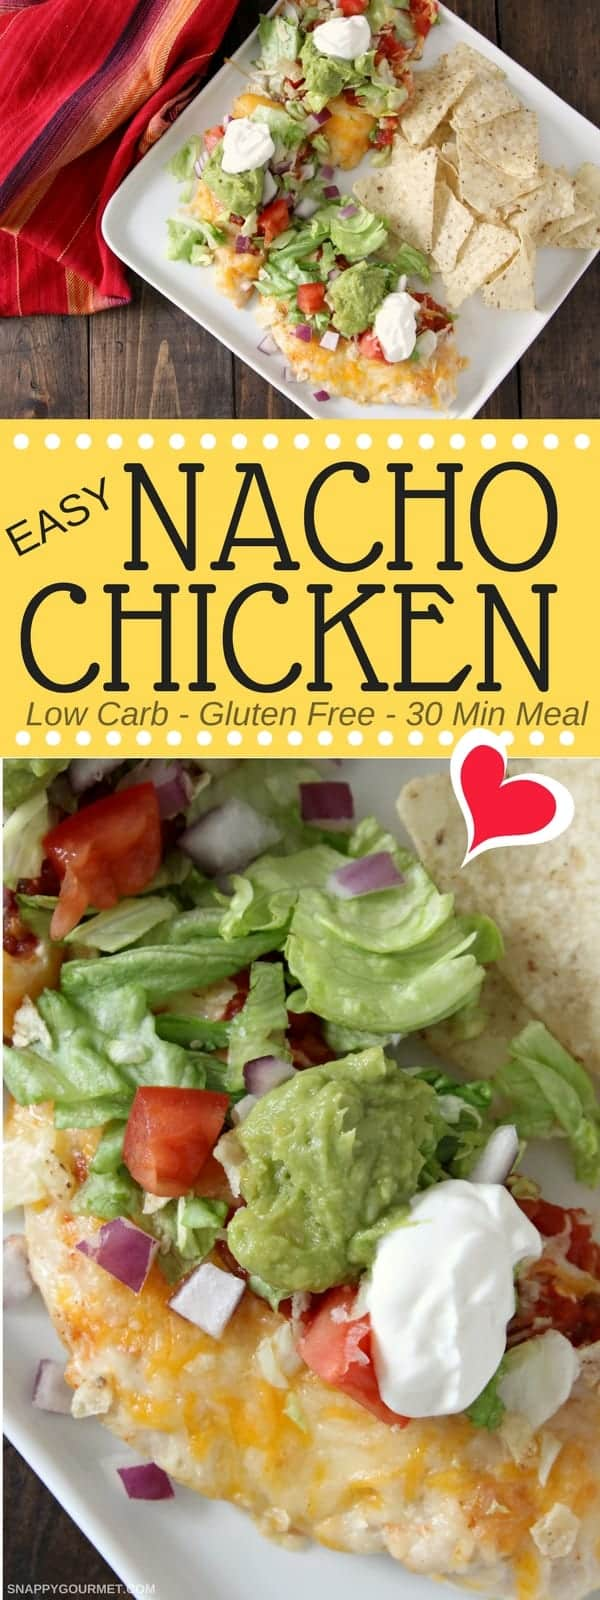 Easy Nacho Chicken - best low carb baked chicken recipe. Like loaded nachos but with chicken! Homemade 30 minute meal that is kid friendly and parent approved! #LowCarb #Chicken #CincoDeMayo #SnappyGourmet